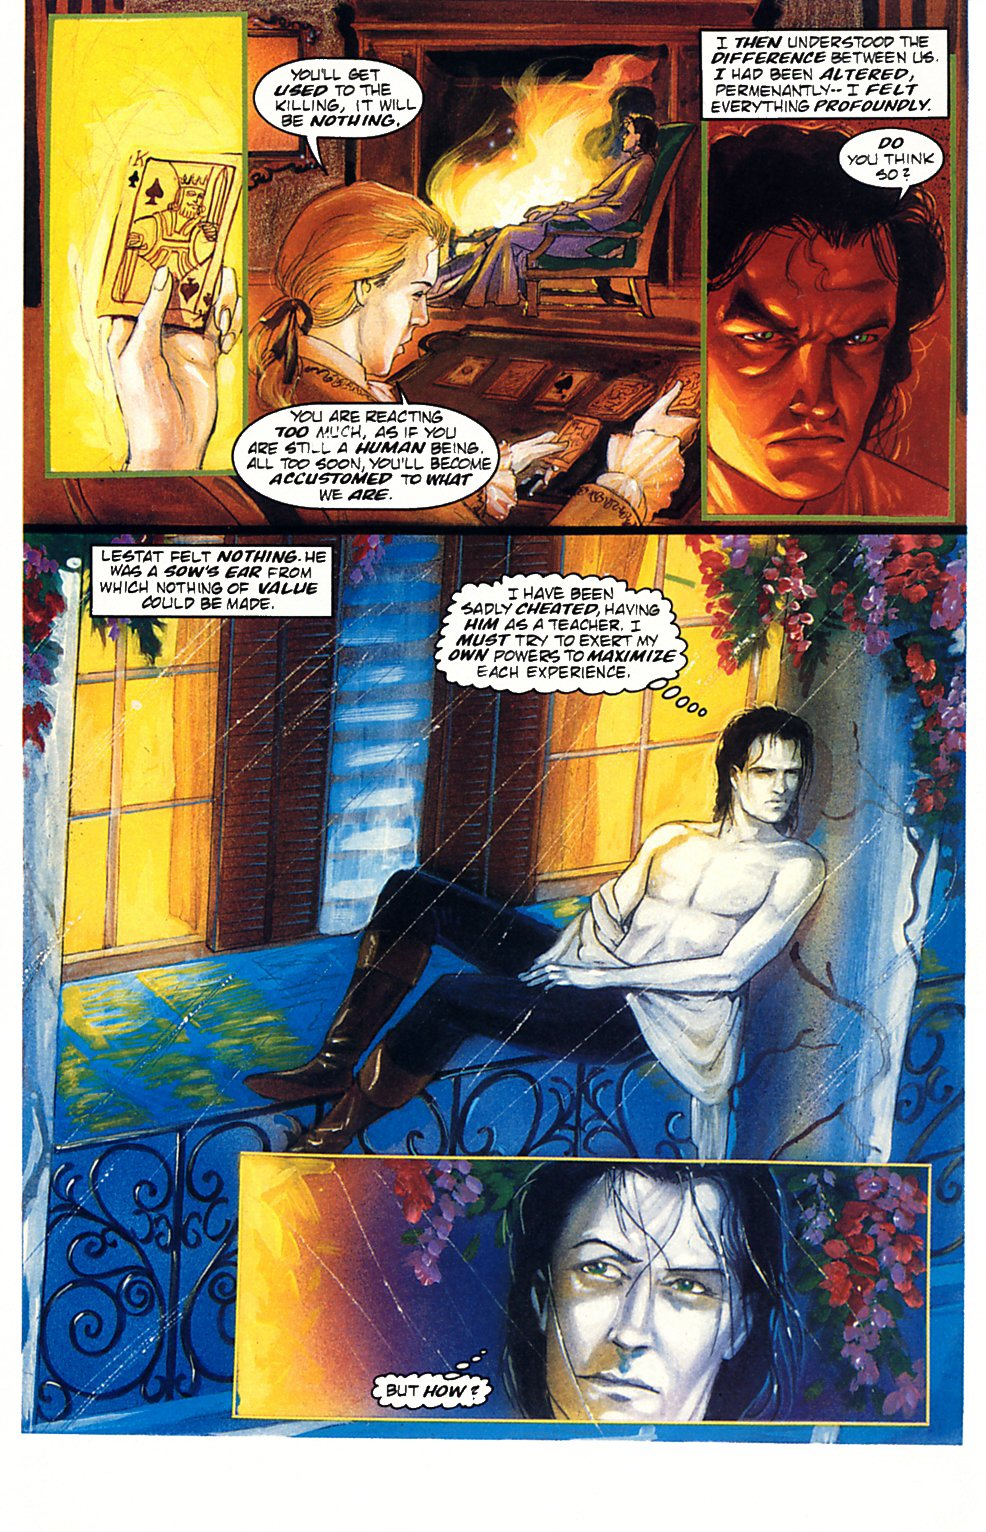 Read online Anne Rice's Interview with the Vampire comic -  Issue #1 - 30